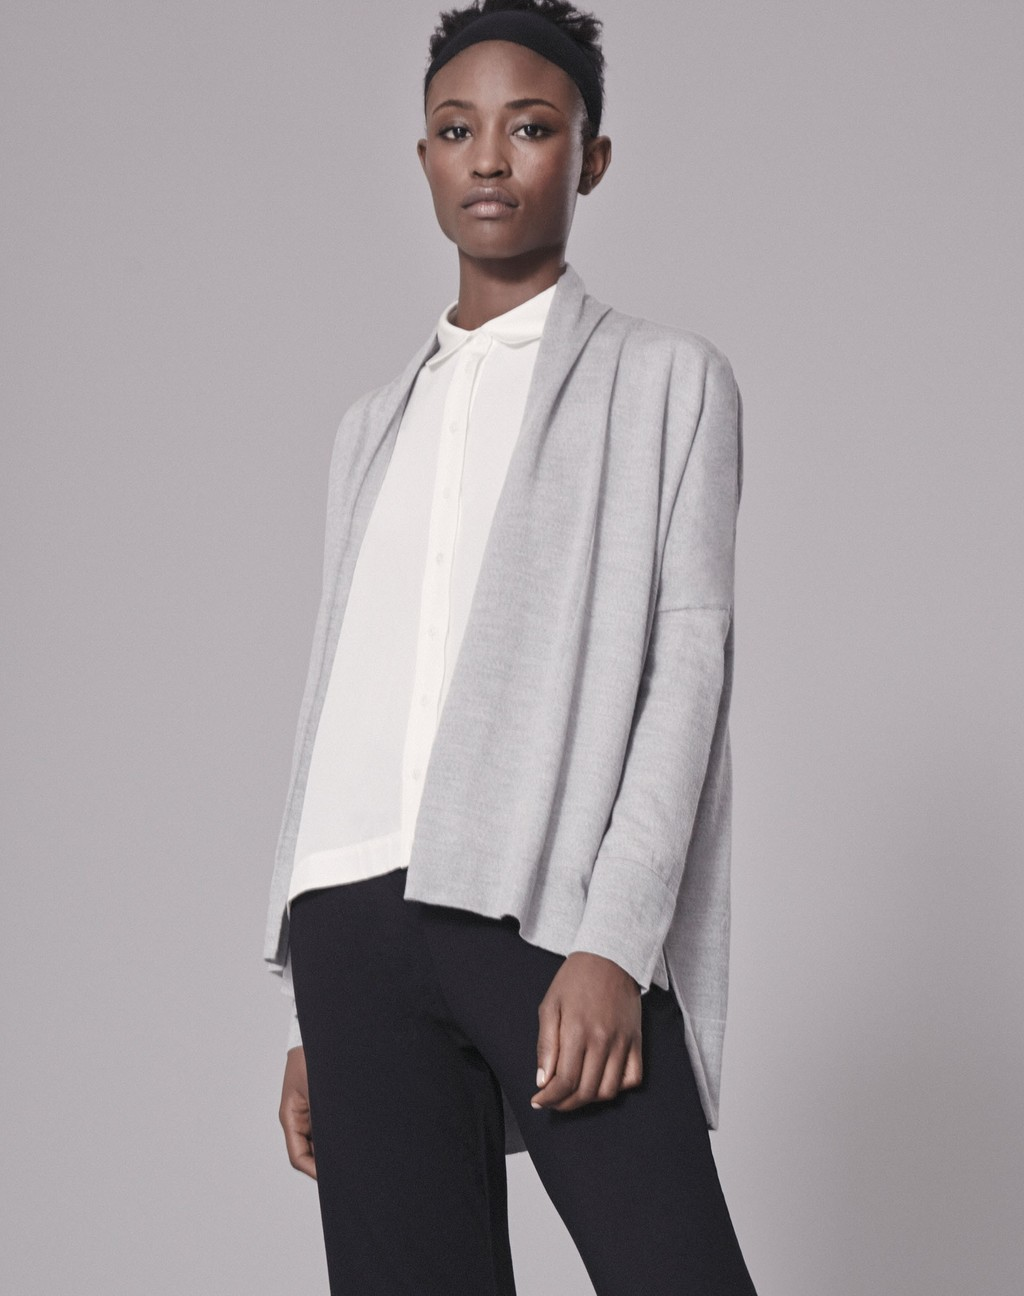 Super Fine 3/4 Cardigan - pattern: plain; neckline: shawl; style: open front; predominant colour: light grey; occasions: casual; length: standard; fibres: wool - 100%; fit: loose; sleeve length: long sleeve; sleeve style: standard; texture group: knits/crochet; pattern type: fabric; season: a/w 2016